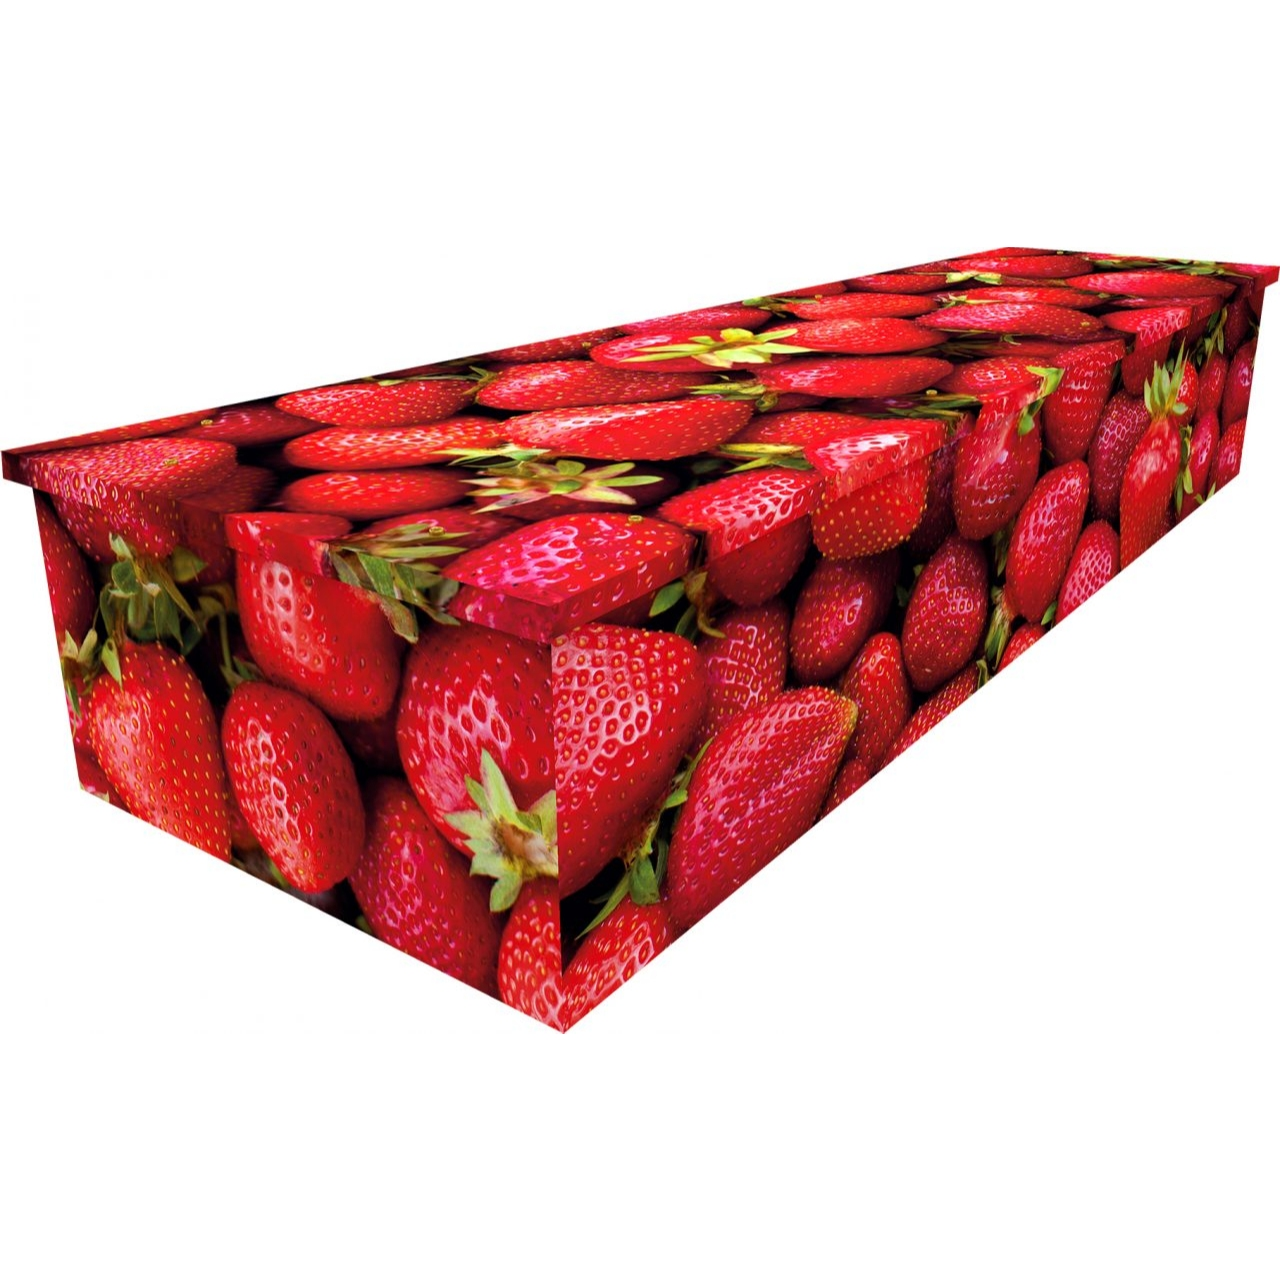 Strawberries Cardboard Coffin